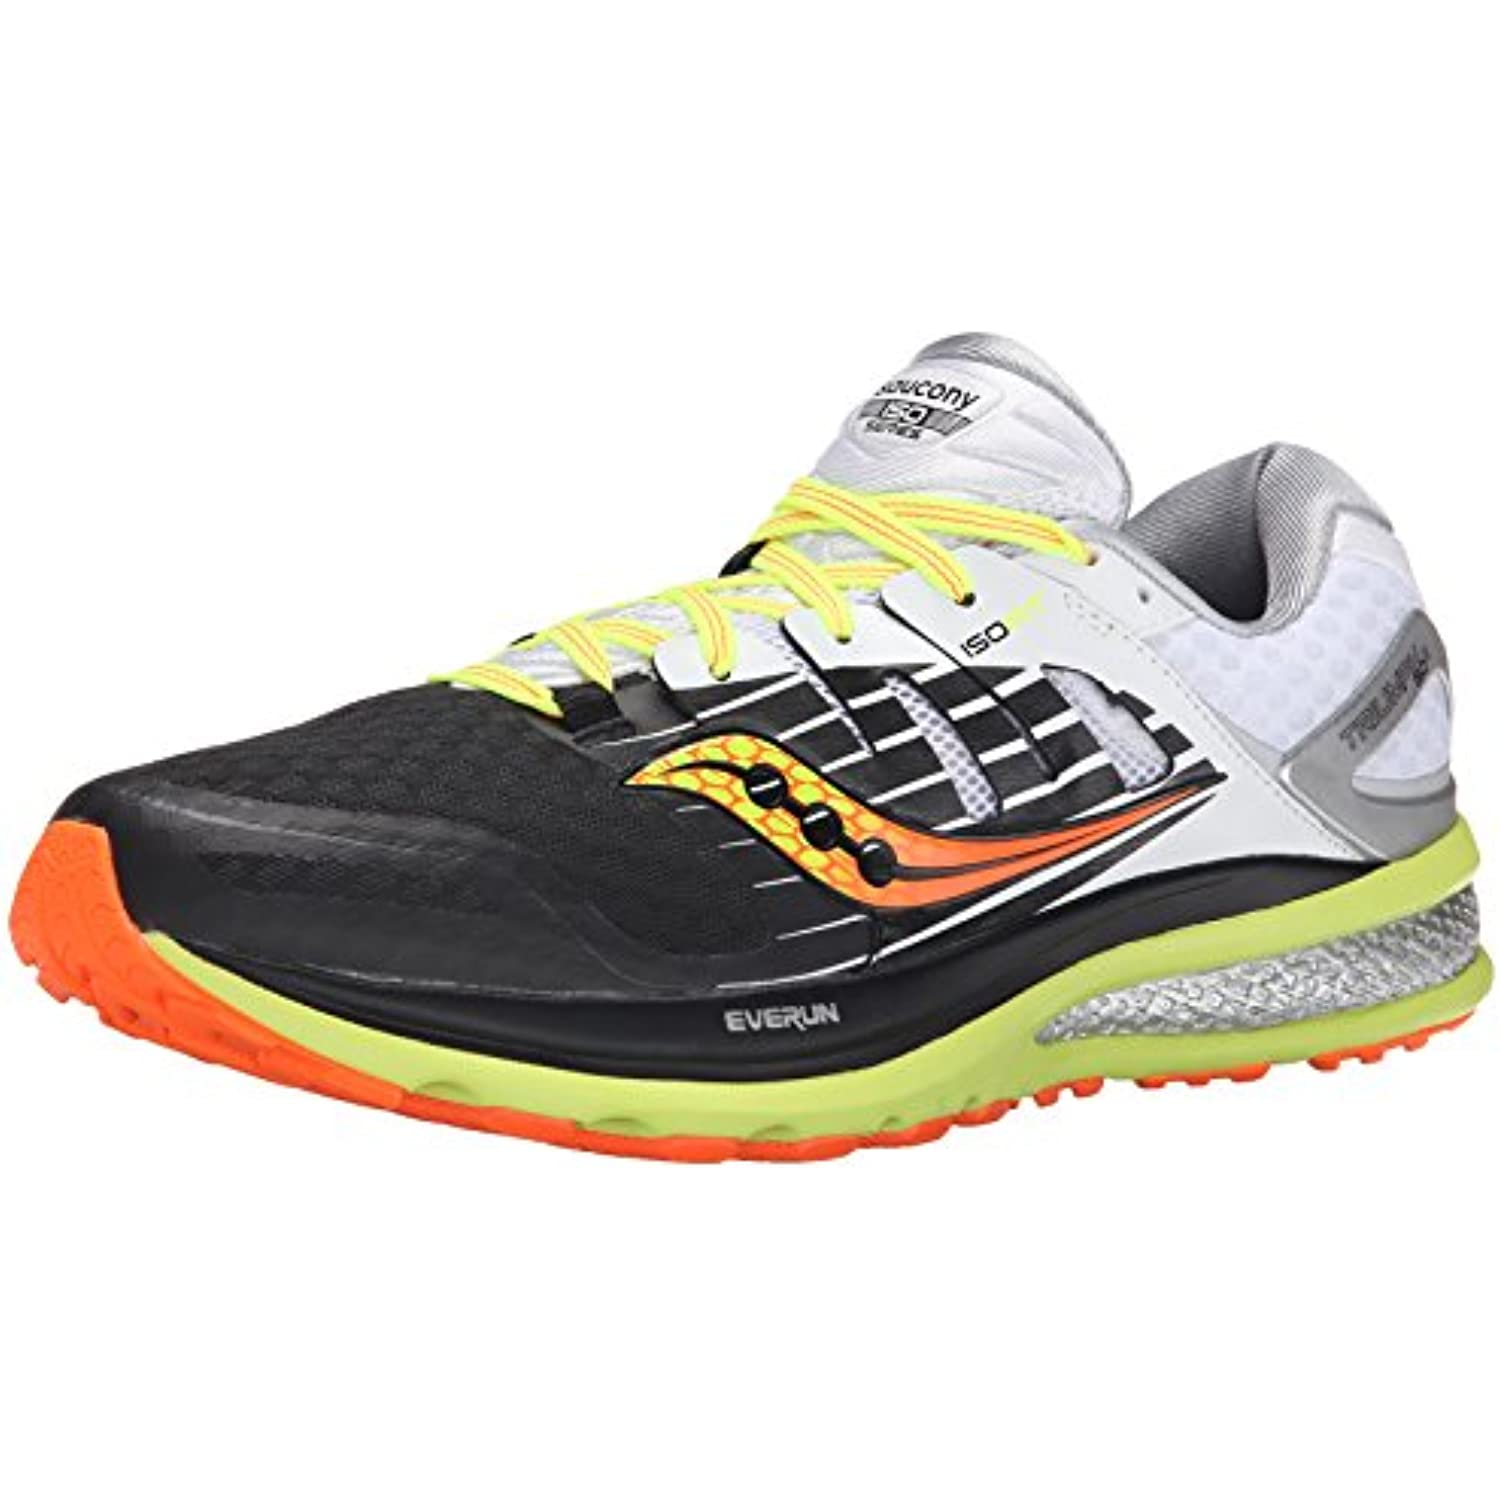 buy online 5b03b bb59a Saucony Saucony Saucony Triumph Iso 2, Chaussures de Running  Compétition Homme - B00YBBDAQK - f64234